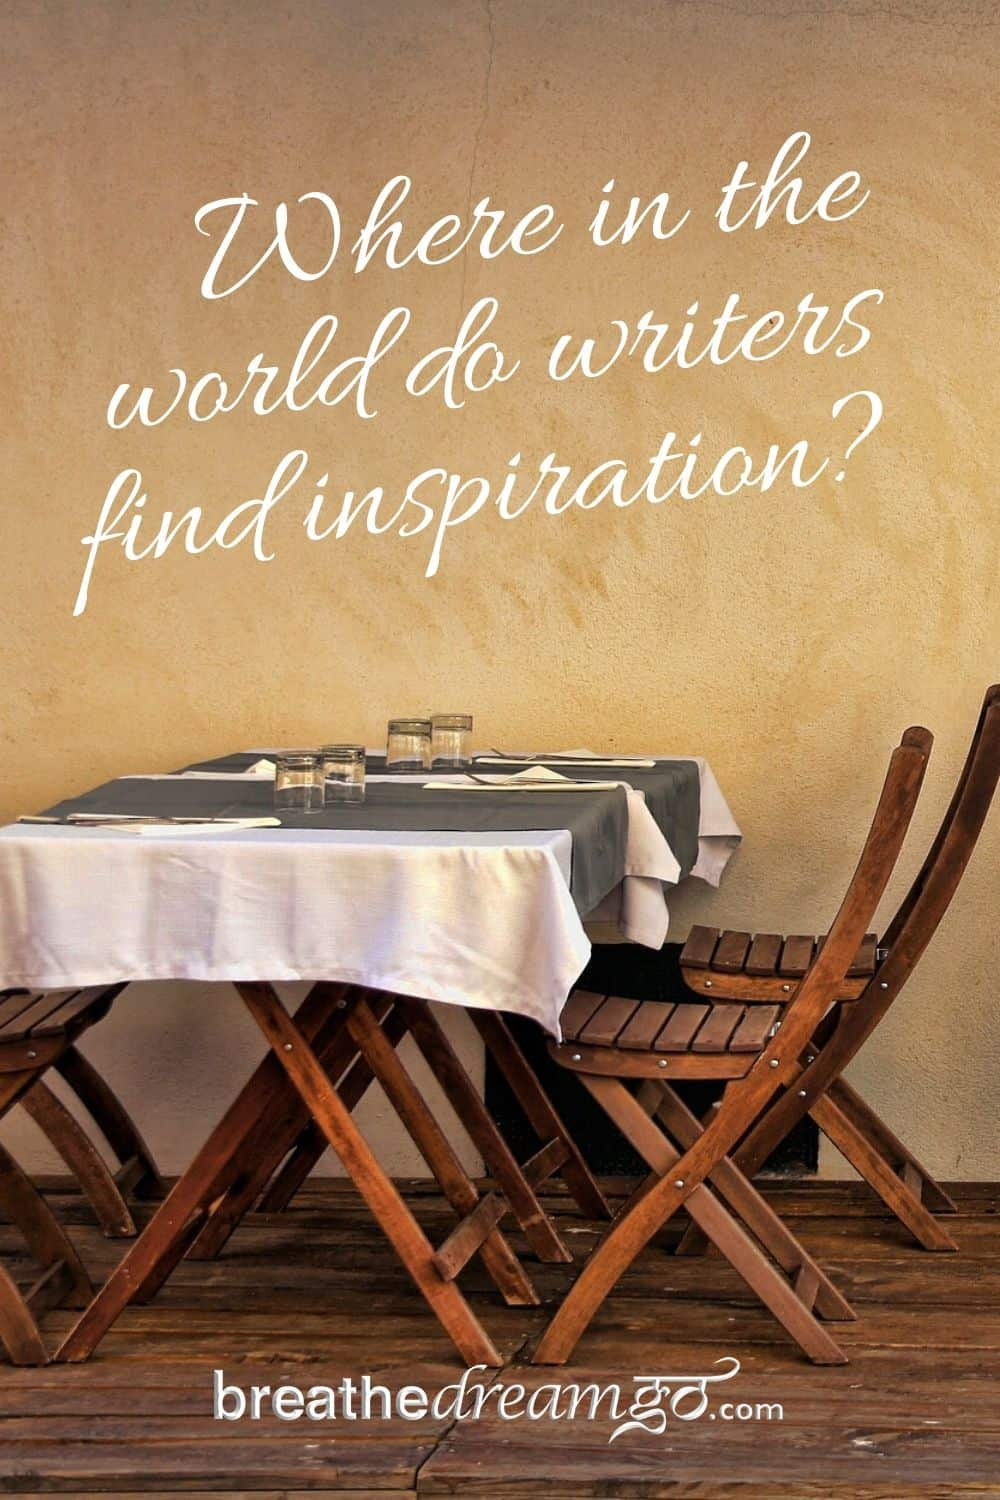 Writers find inspiration